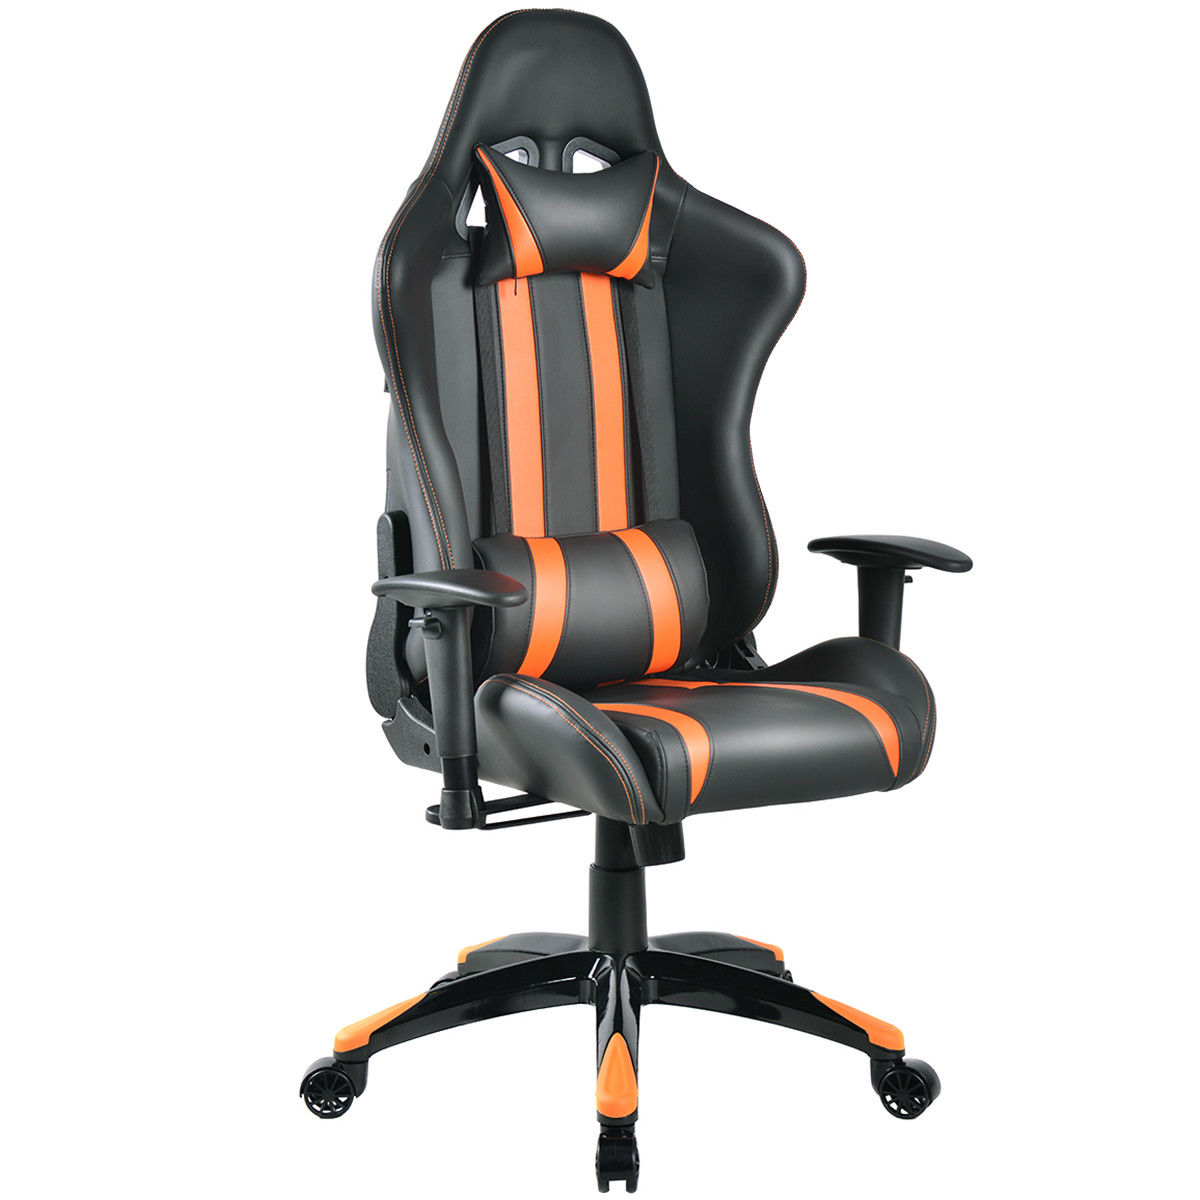 Giantex Racing High Back Reclining Gaming Chair Ergonomic